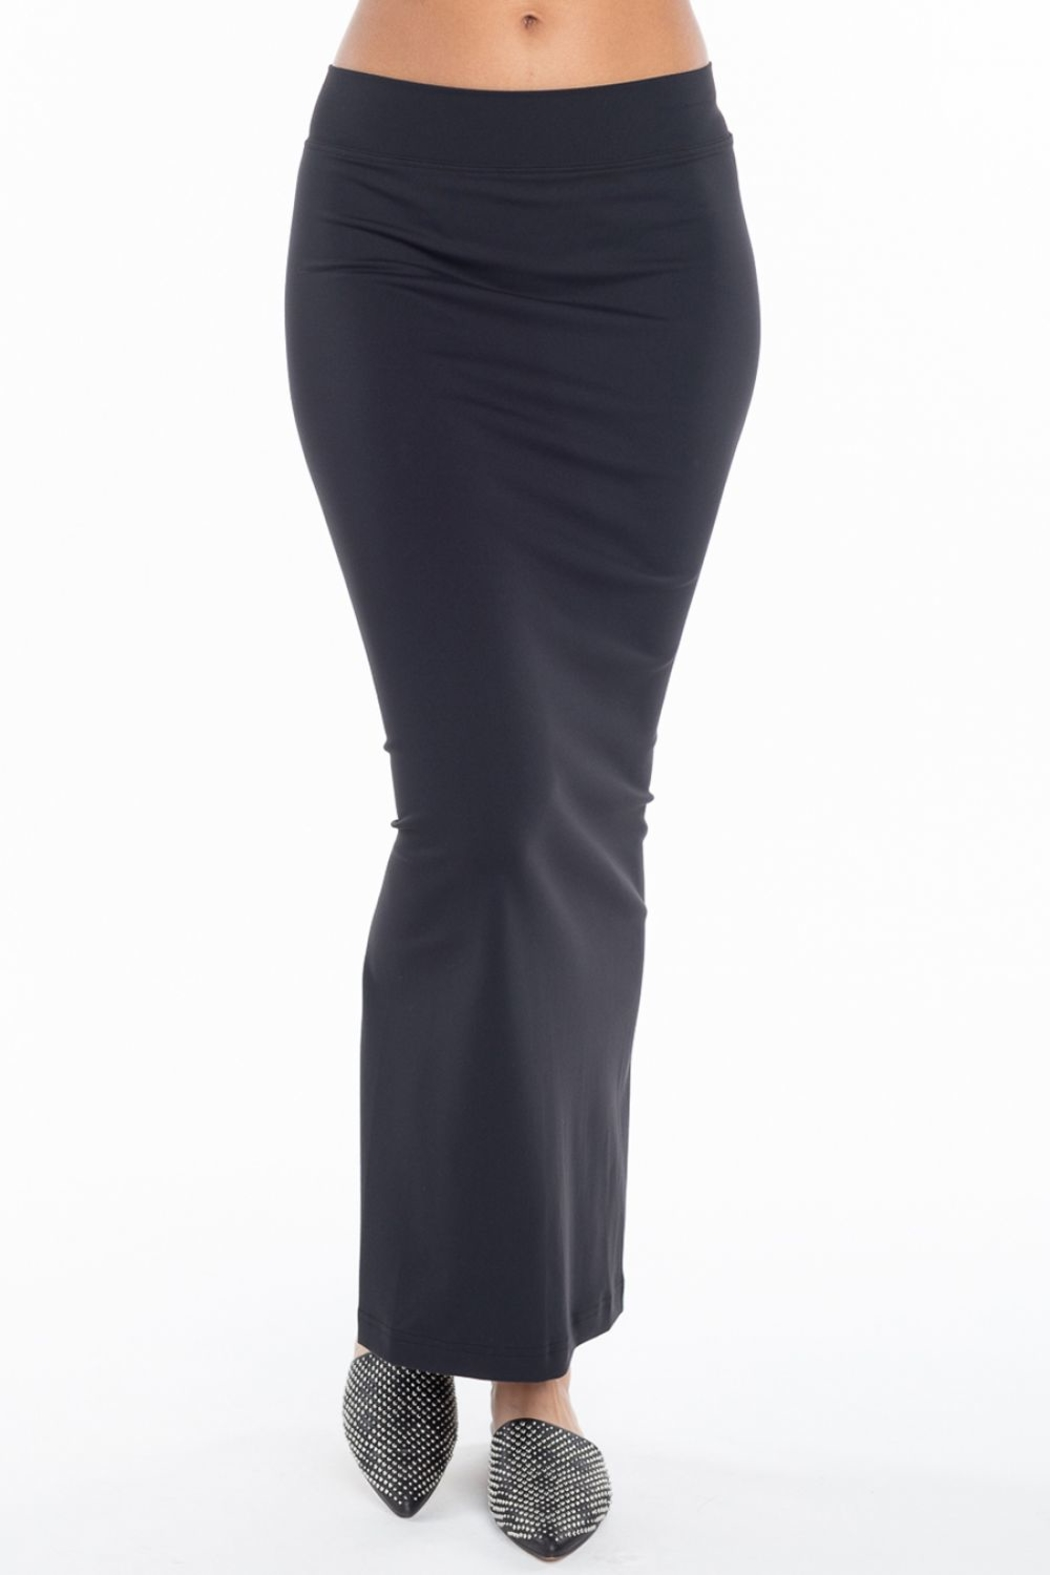 Hard Tail Hardtail Pencil Skirt SUP-19 - Side Cropped Image